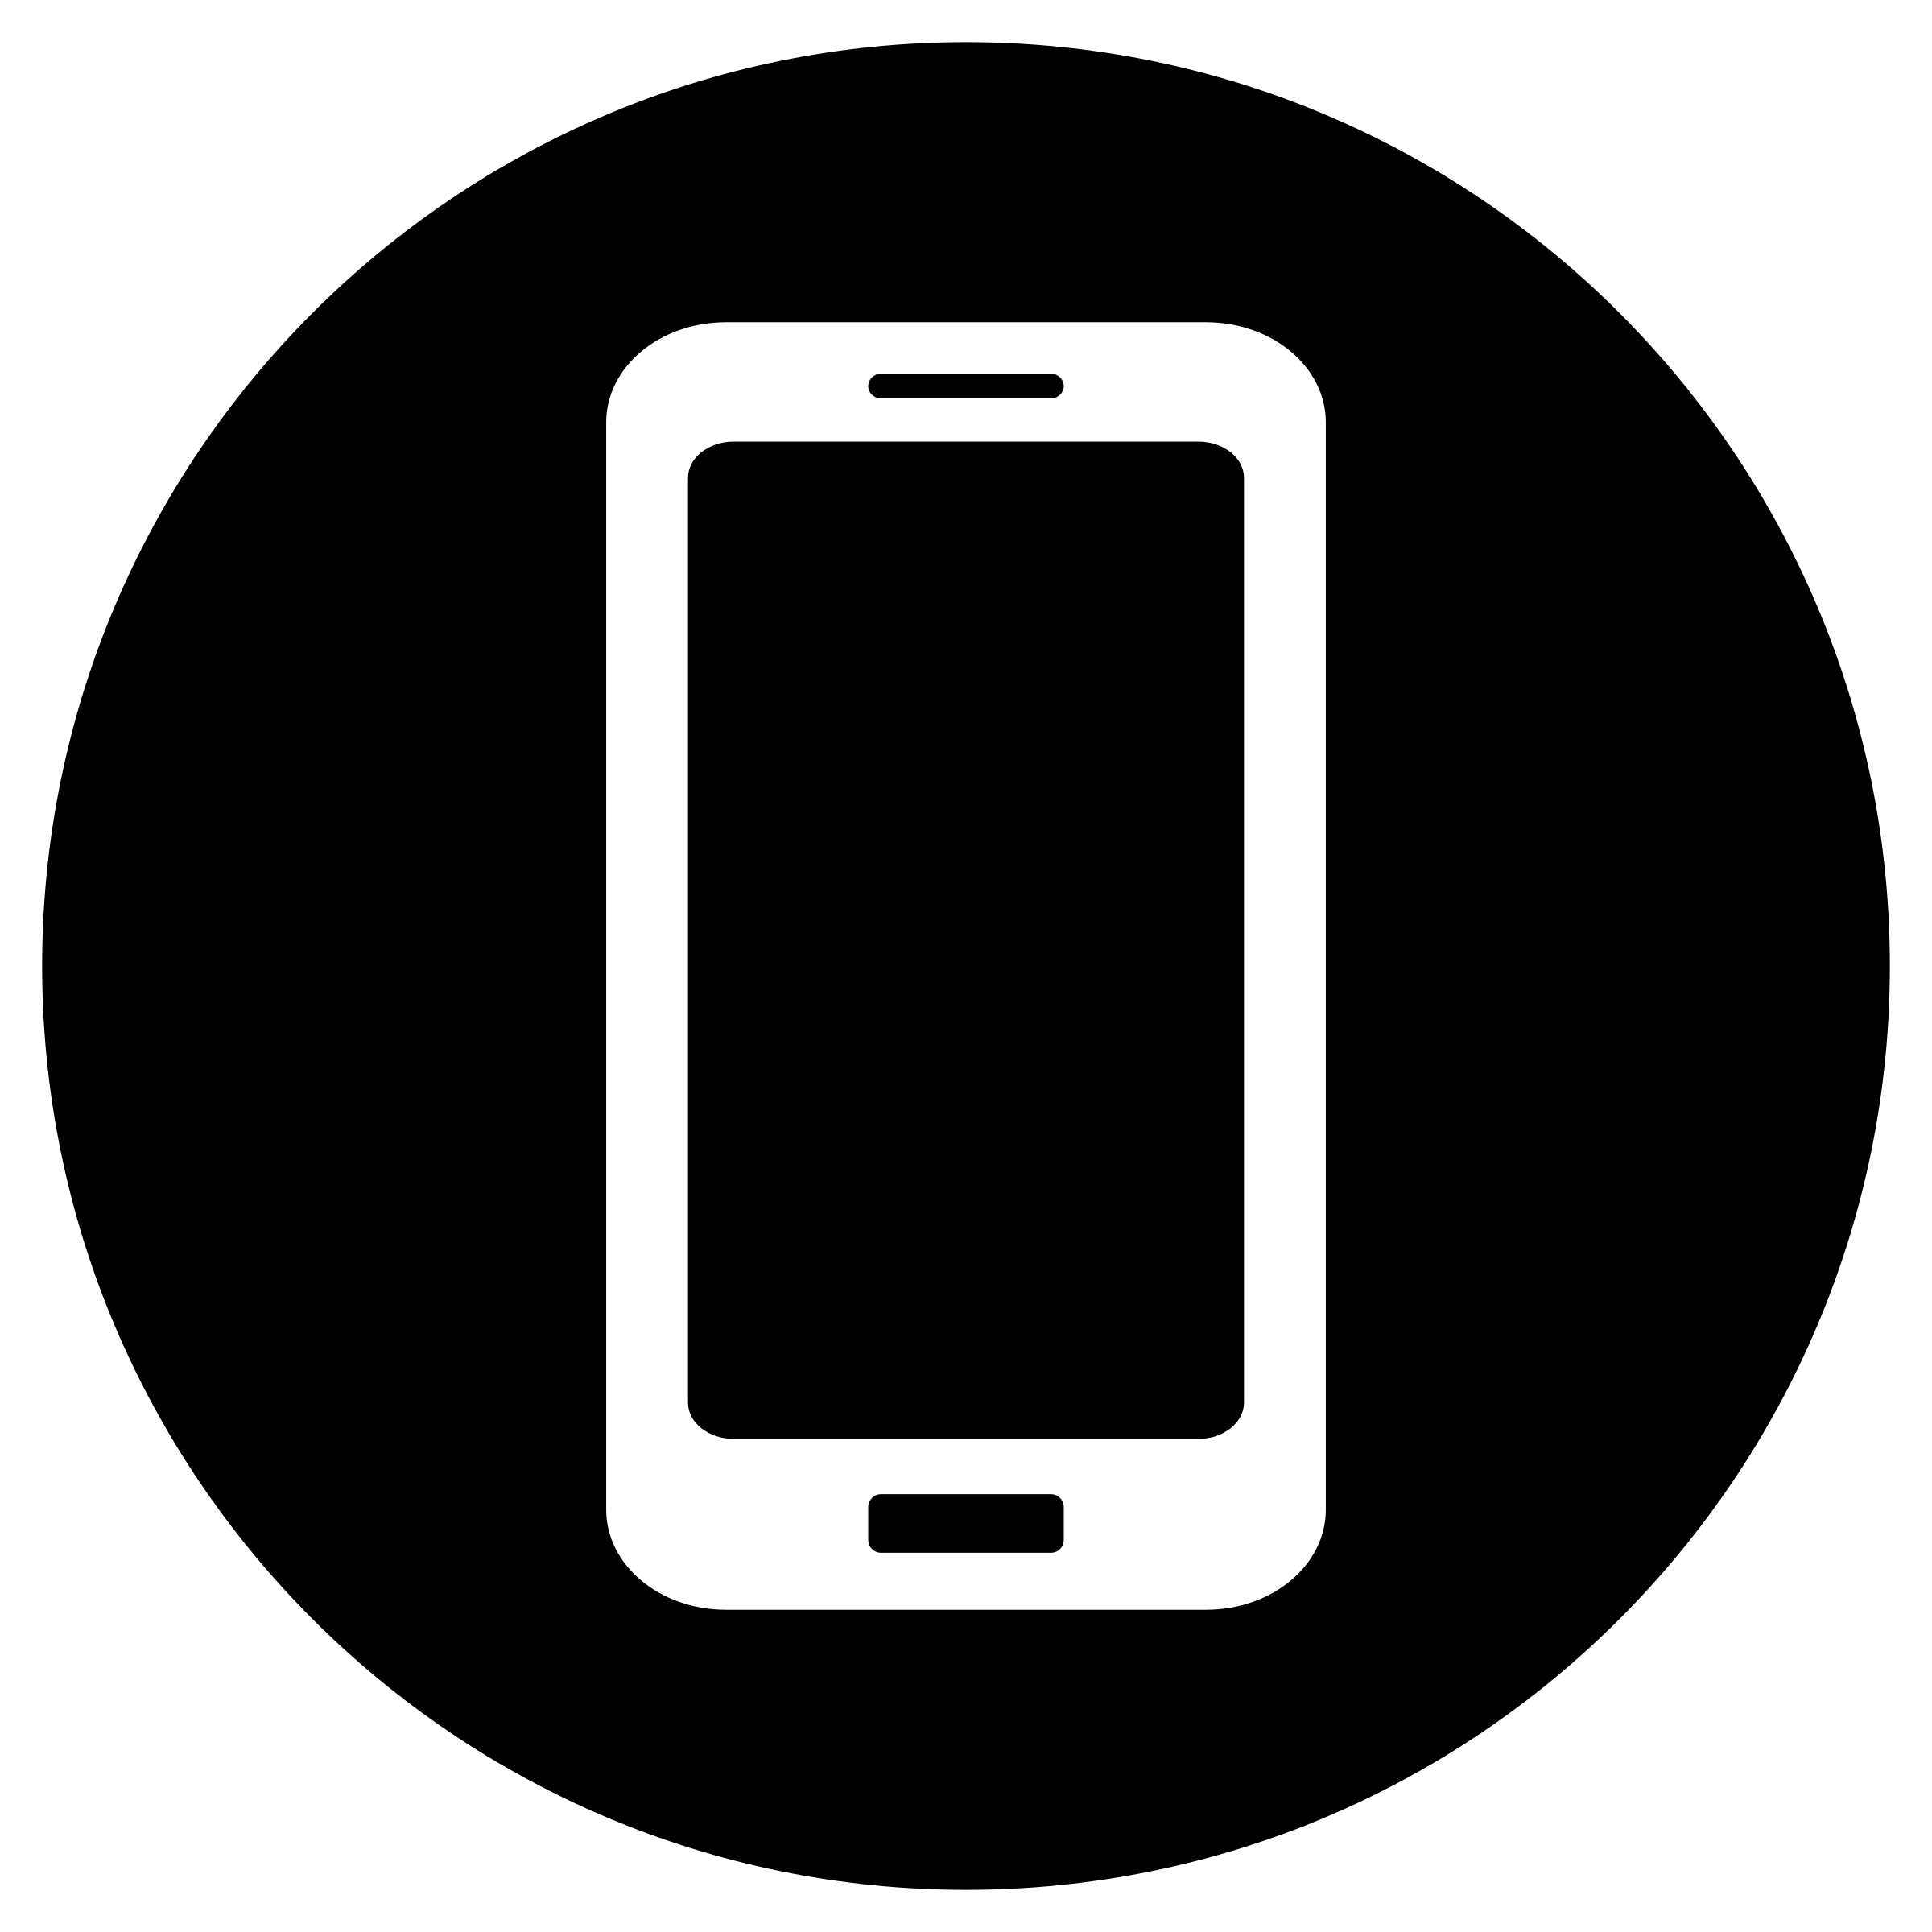 White on black big. Phone clipart mobile icon